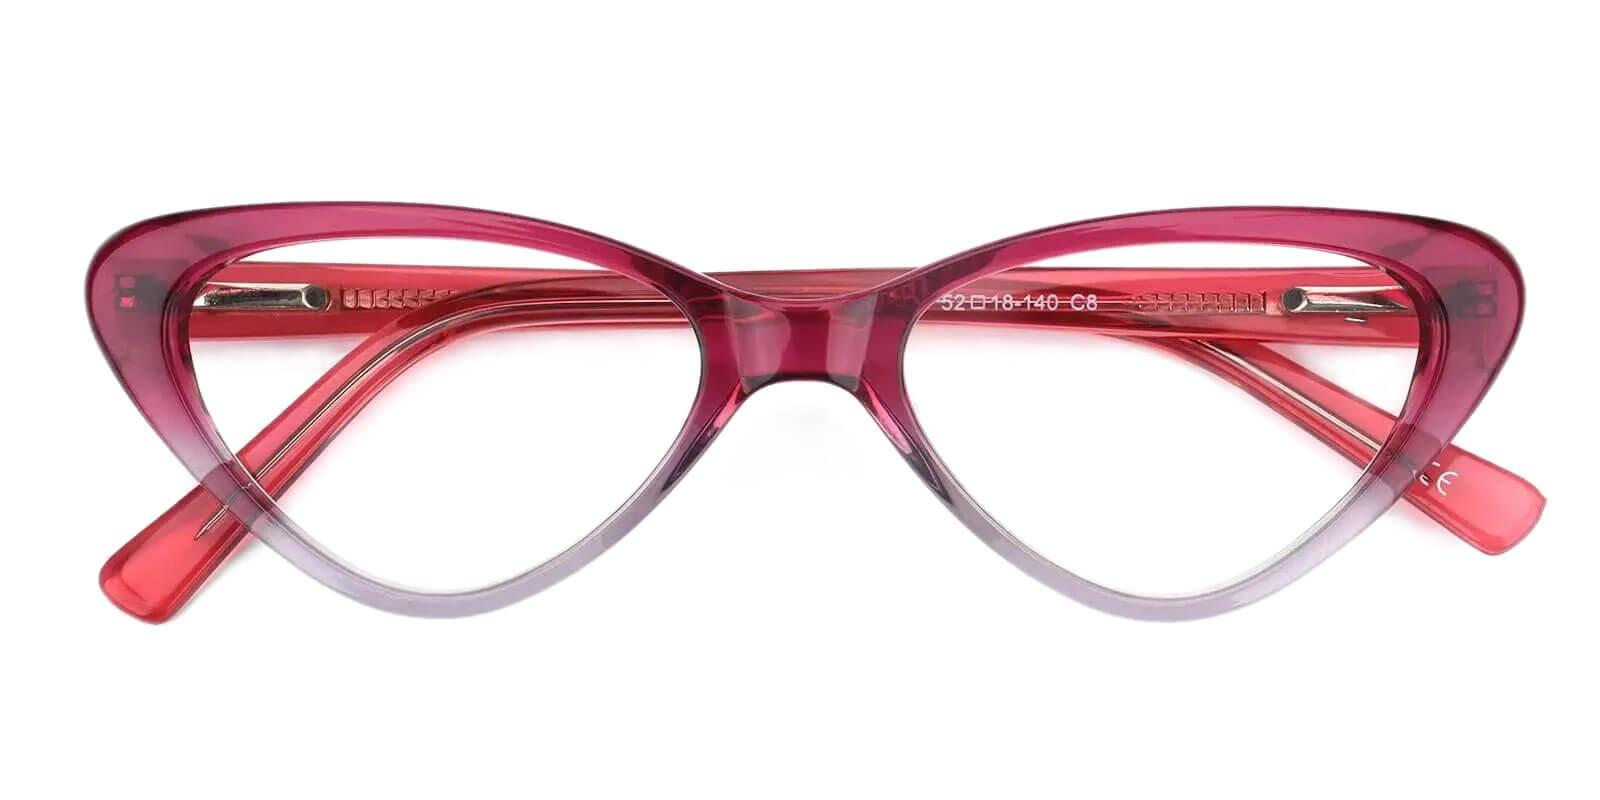 Hannah Purple Acetate Eyeglasses , SpringHinges , UniversalBridgeFit Frames from ABBE Glasses